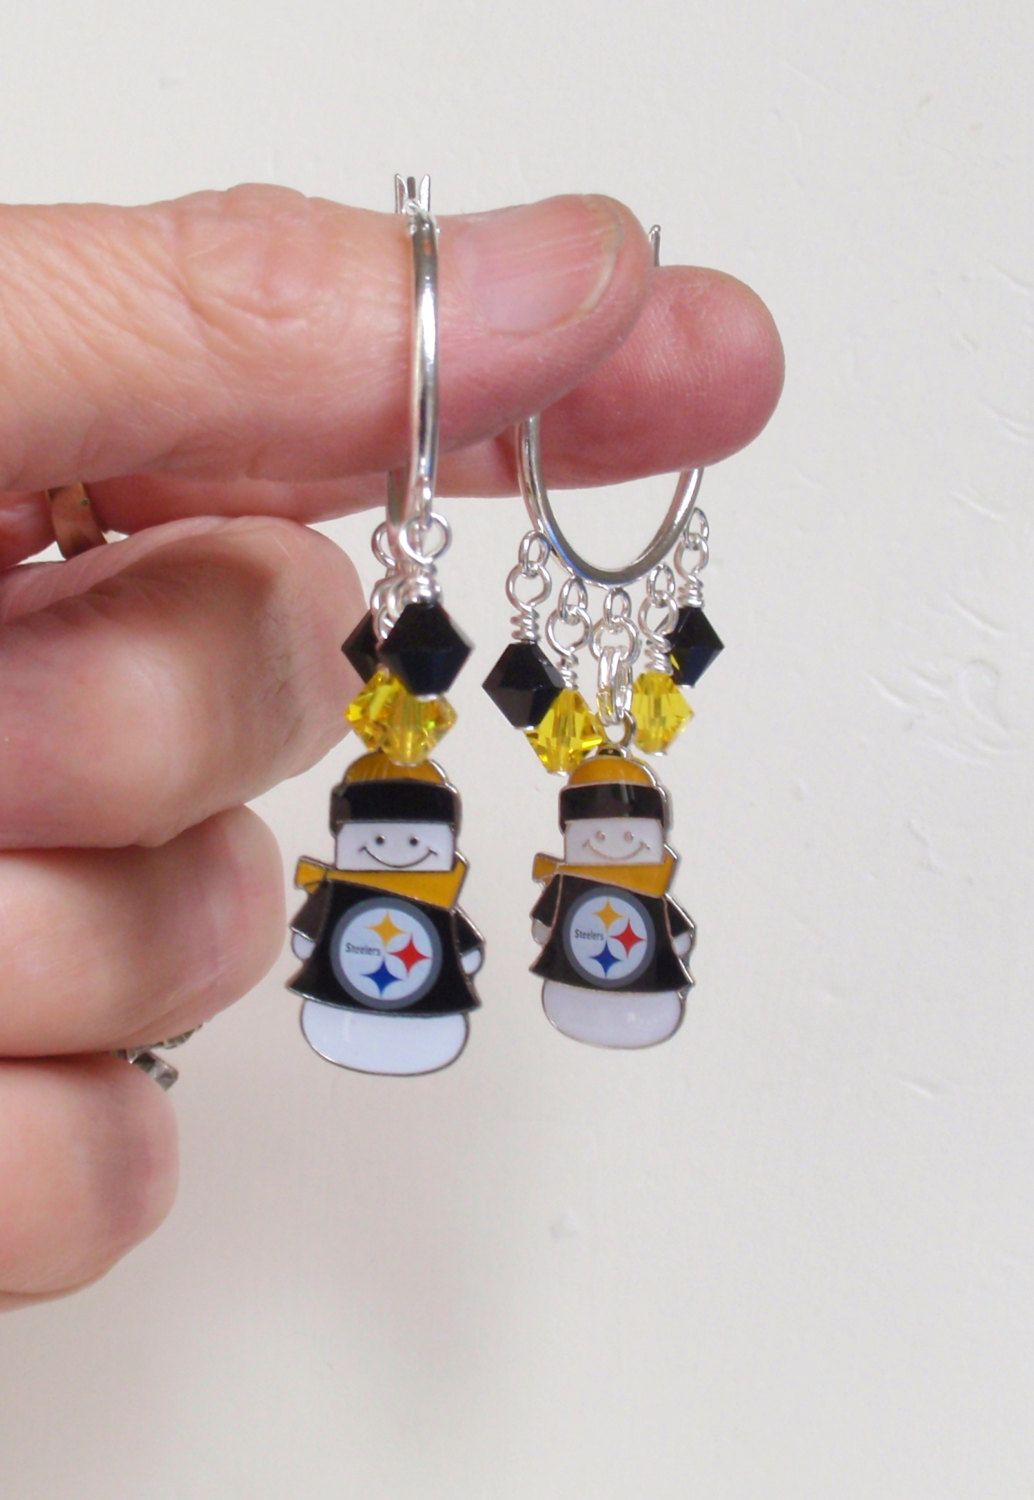 Pittsburgh Steelers Earrings, NFL Steelers Play Pro Football in the Snow Black and Gold Crystal Snowman Charm Hoop Earrings by scbeachbling on Etsy